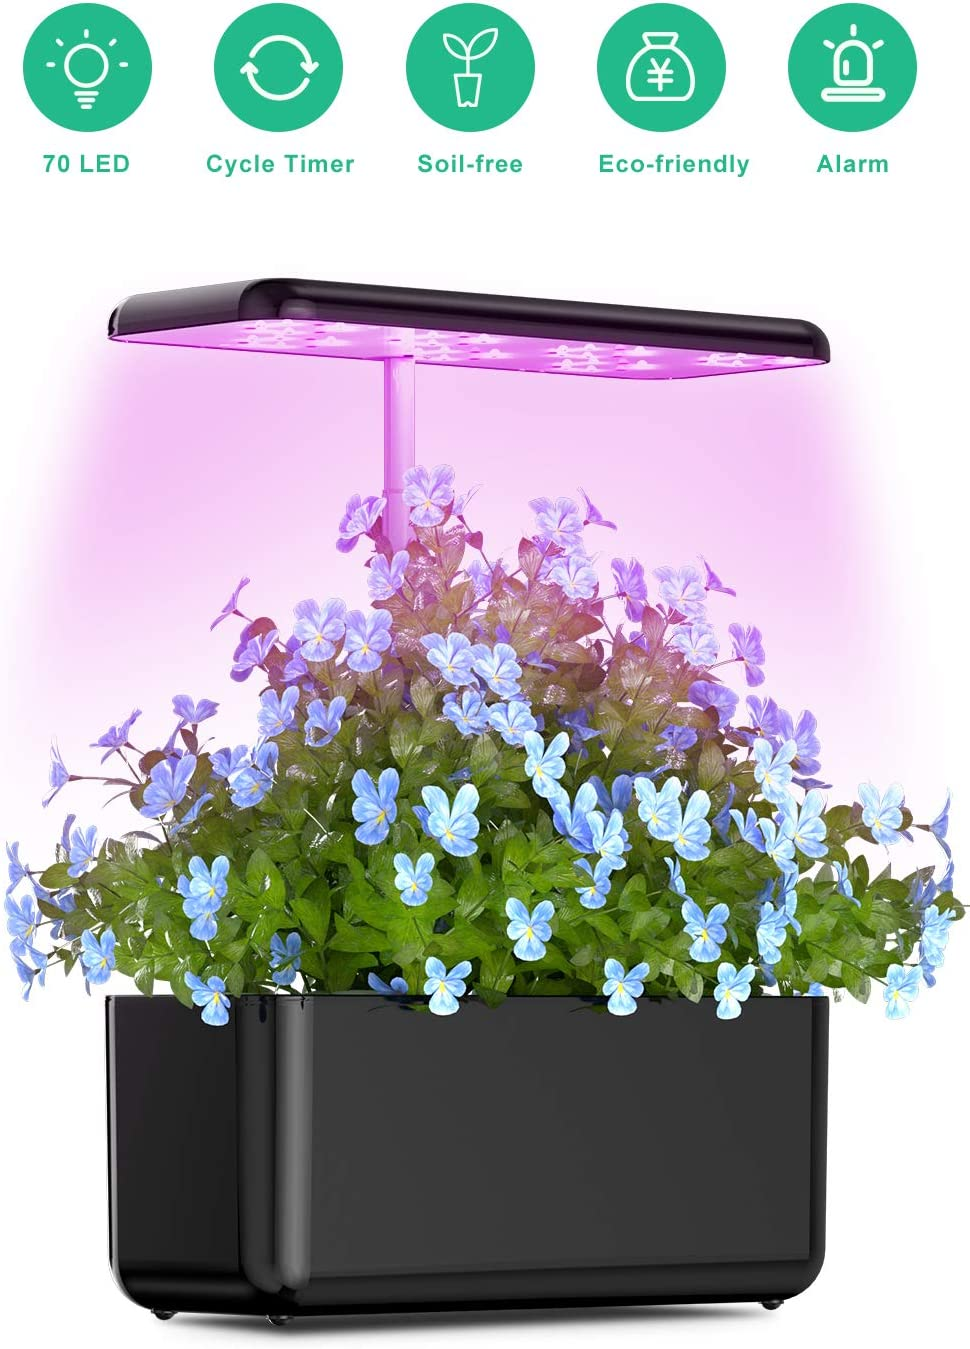 Hydroponic Indoor Growing System, Vogek Small Herb Garden Grow System Kit with LED Grow Light, Smart Garden for Plant Growing, Automatic Timer Germination Kit, Adjustable Height